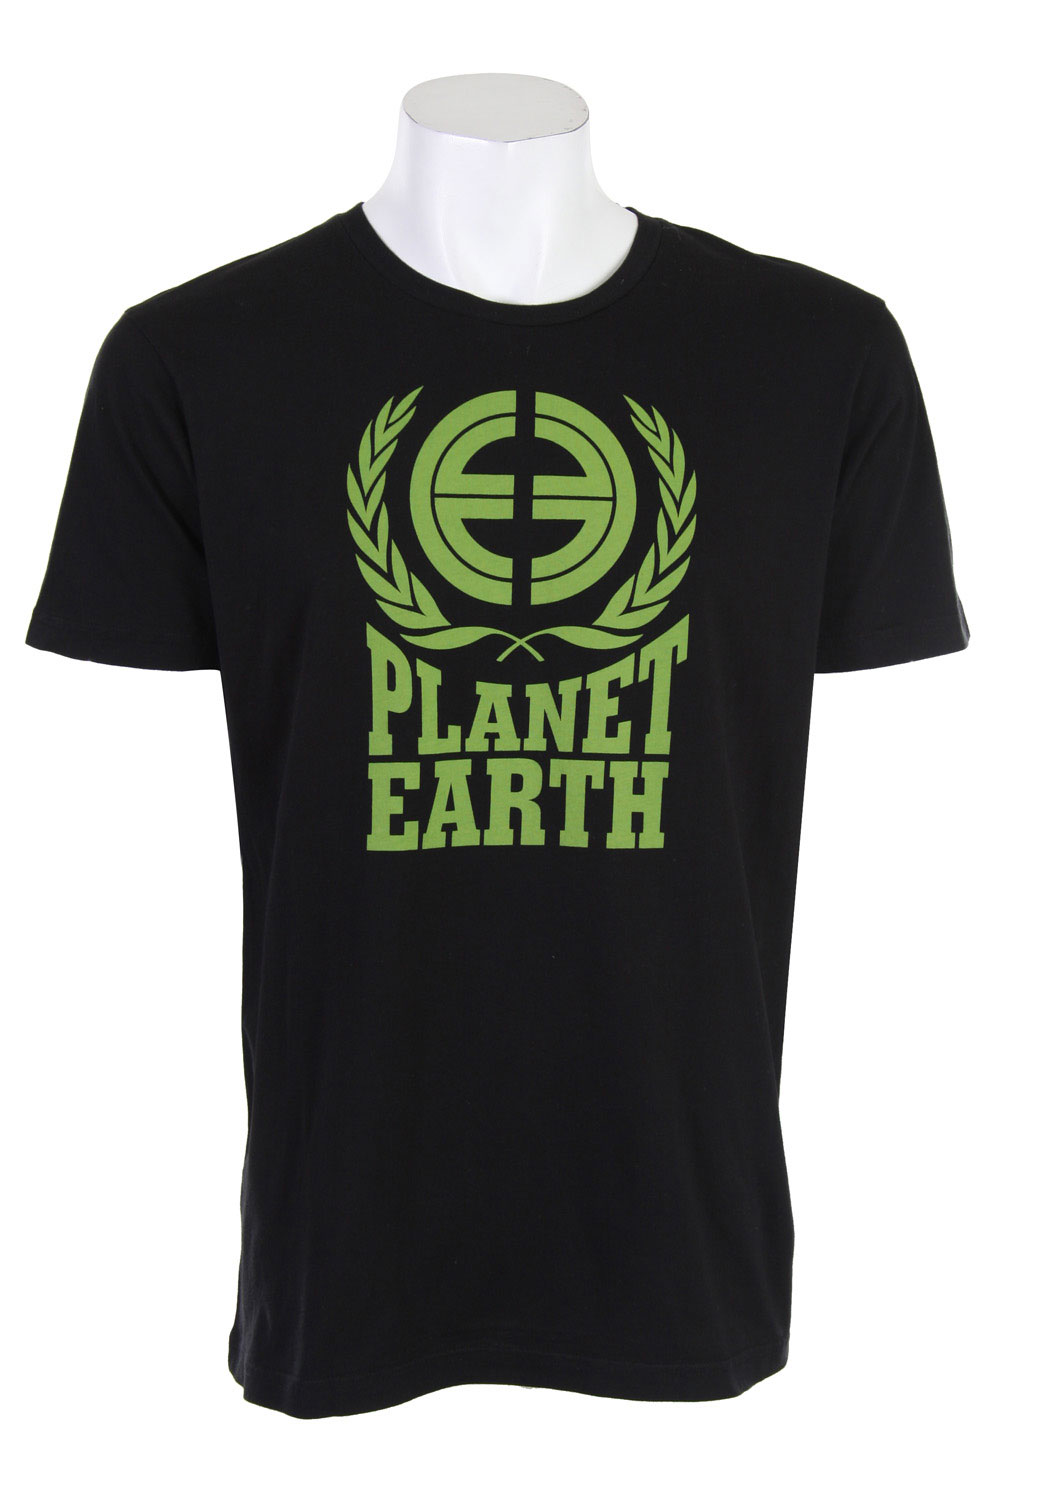 This Planet Earth Fleming T-Shirt is both extremely comfortable and stylish. Its 100% Organic Cotton makes for a comfortable fit and soft feel. Planet Earth is on of the leading brands in the industry. All of their t-shirts are made from 100% organic cotton. You can expect only the highest of quality from all of their line of products. You will not be disappointed with this t-shirt. Best of all, the price tag is incredibly low!100% Organic Cotton - $20.95